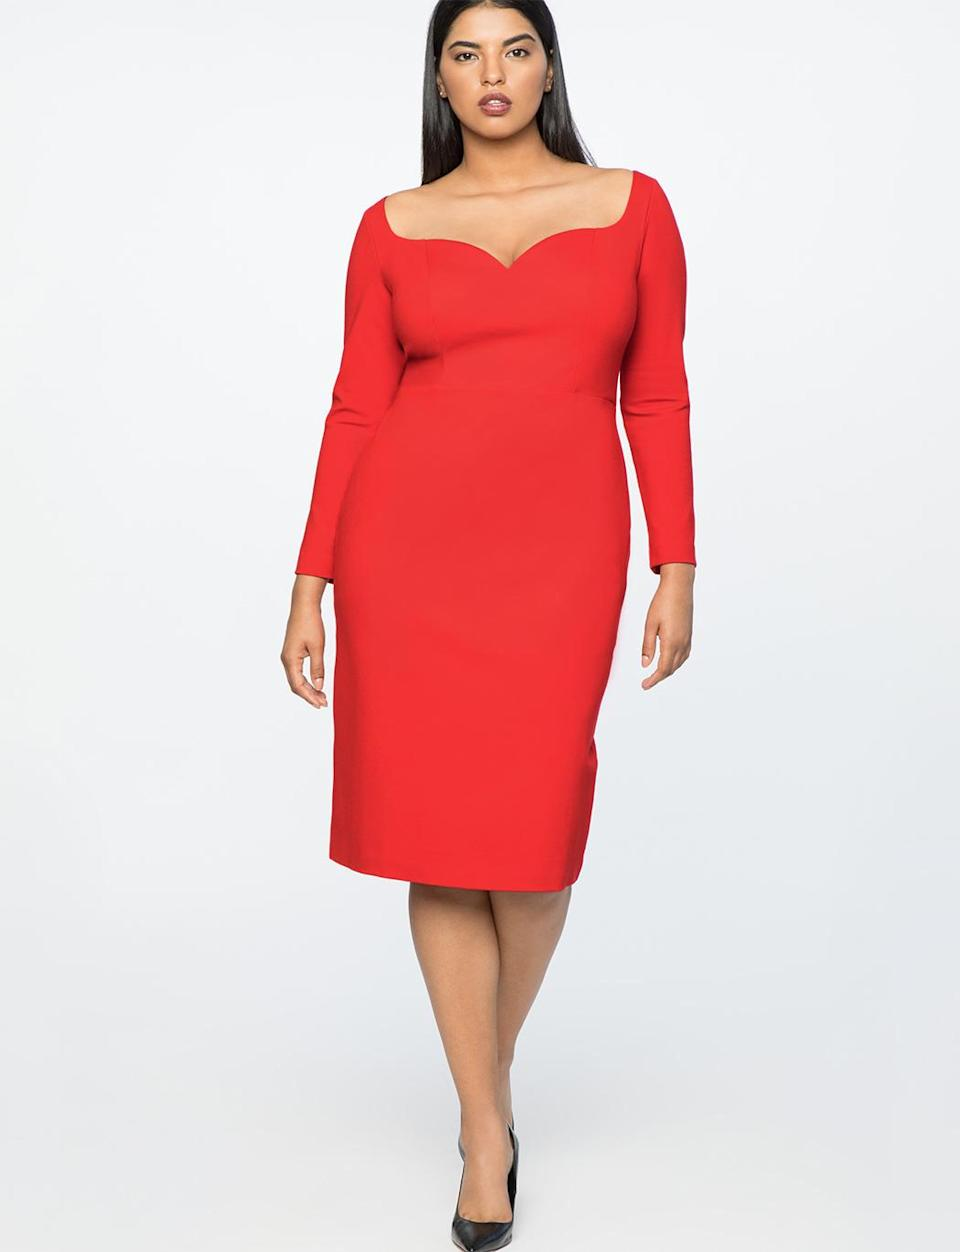 """<p>This sweetheart dress comes in a red-hot shade for those evenings when you want to spice up your look. <br>Jason Wu x Eloquii sweetheart sheath dress in red, $111, <a rel=""""nofollow noopener"""" href=""""https://fave.co/2P4wr2w"""" target=""""_blank"""" data-ylk=""""slk:eloquii.com"""" class=""""link rapid-noclick-resp"""">eloquii.com</a> </p>"""